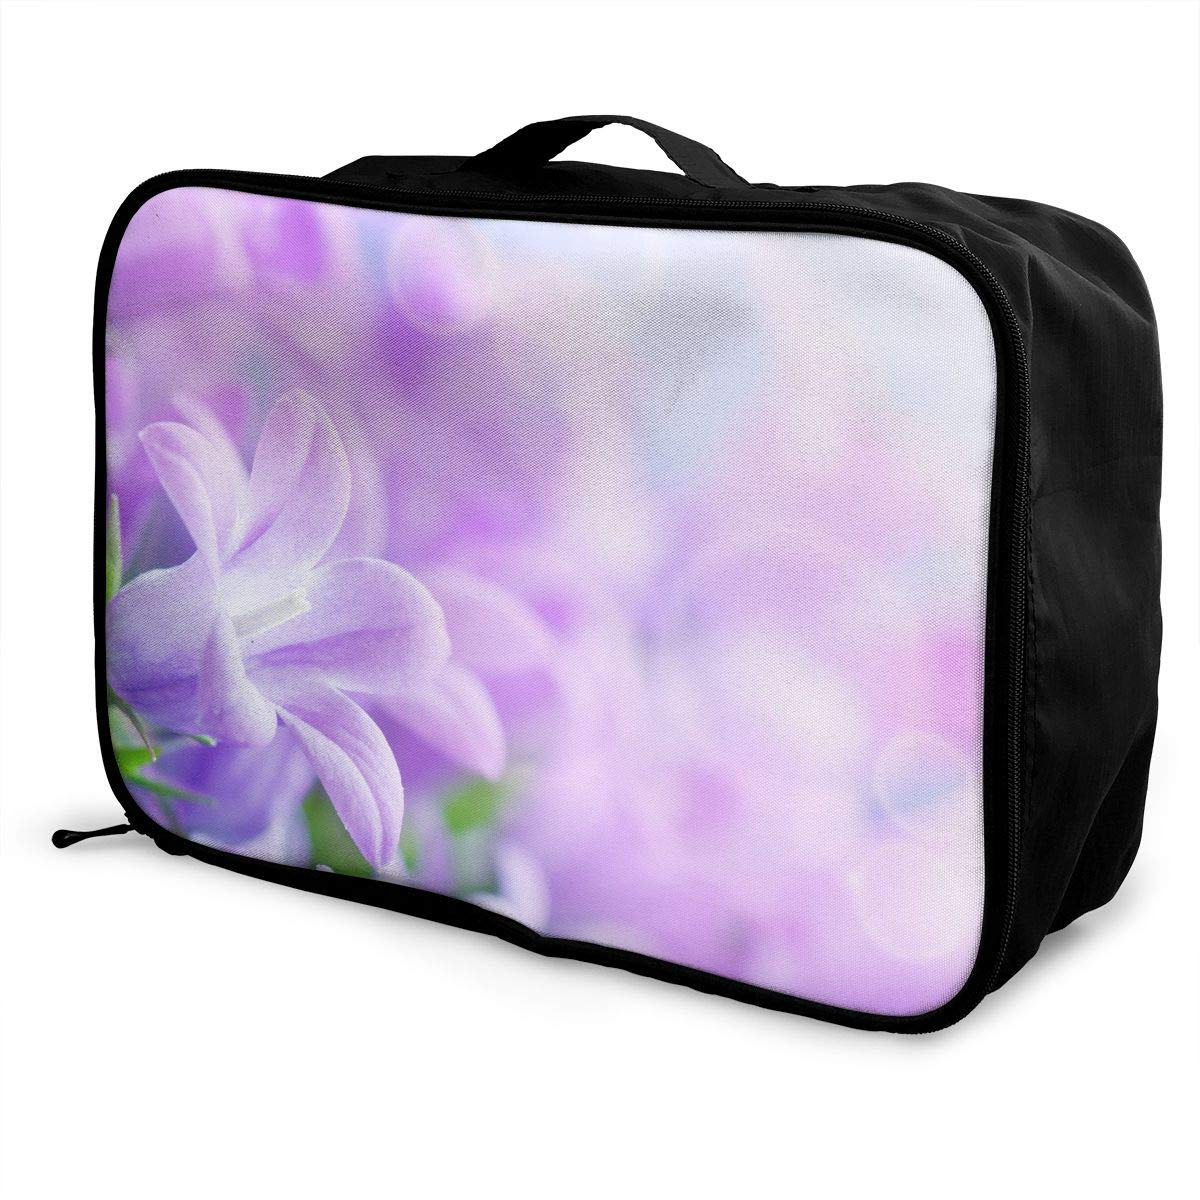 Travel Luggage Duffle Bag Lightweight Portable Handbag Lavender Flowers Print Large Capacity Waterproof Foldable Storage Tote